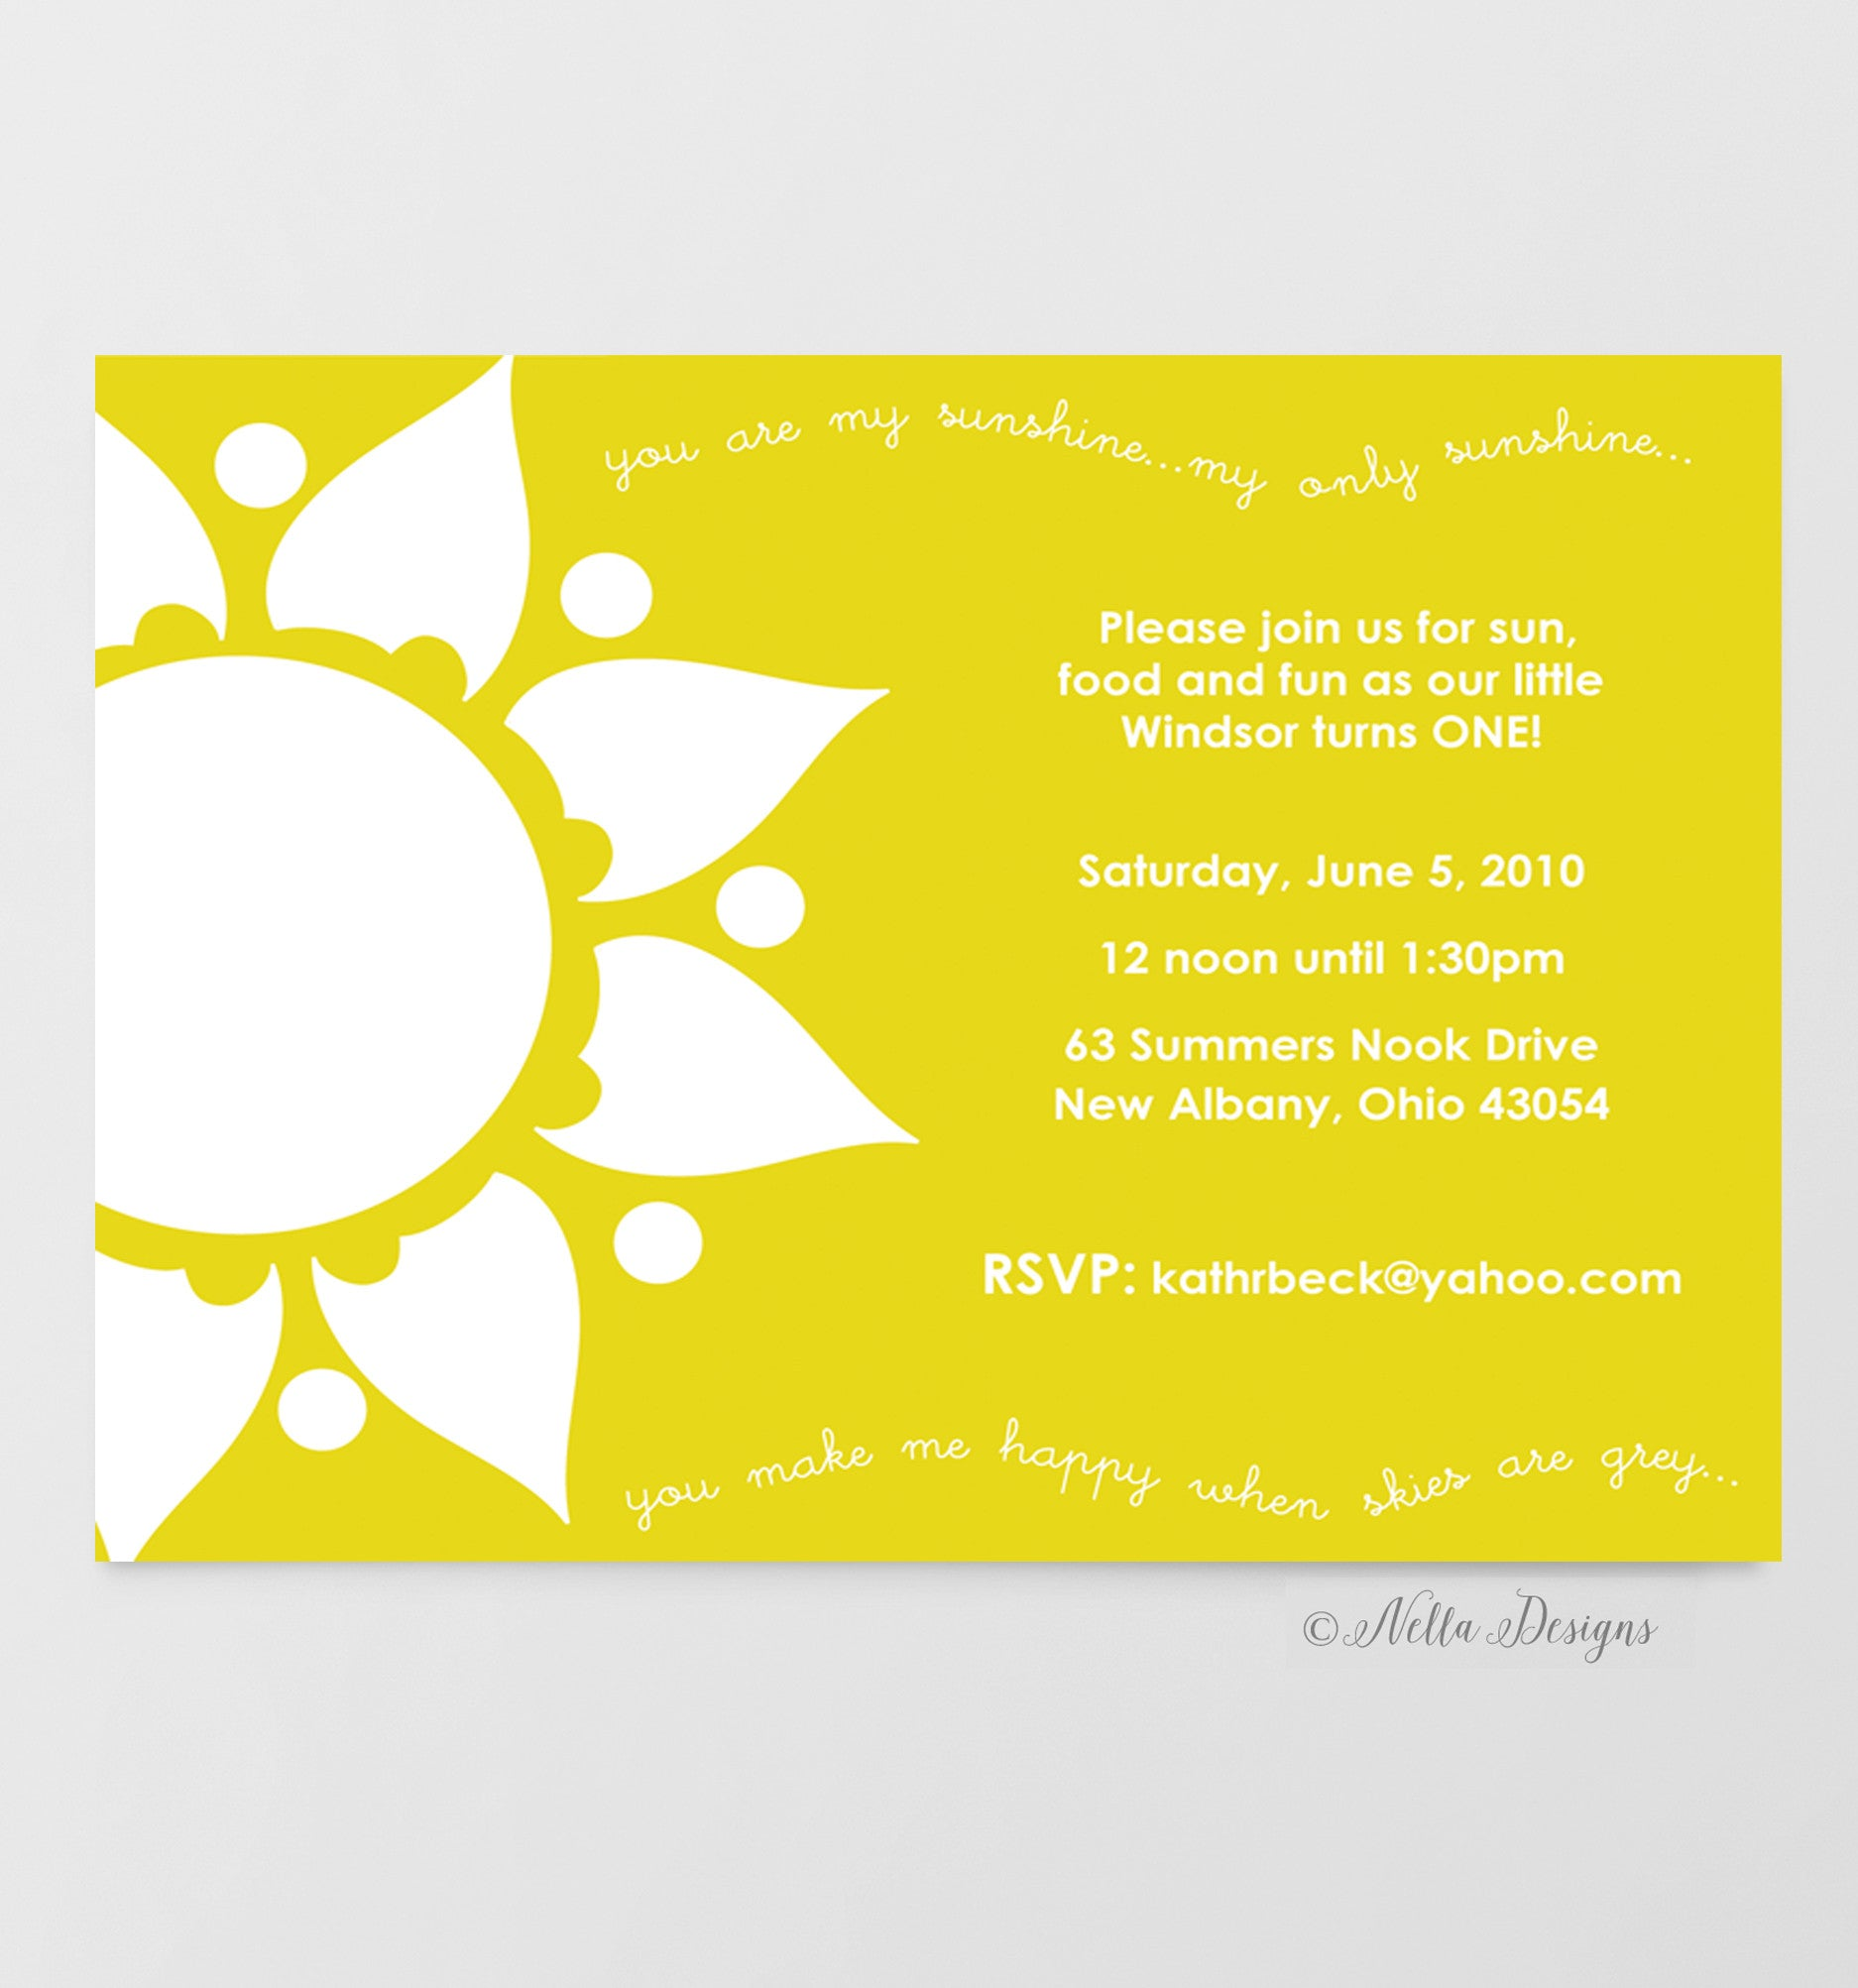 you are my sunshine invitations for baby showers or birthday parties